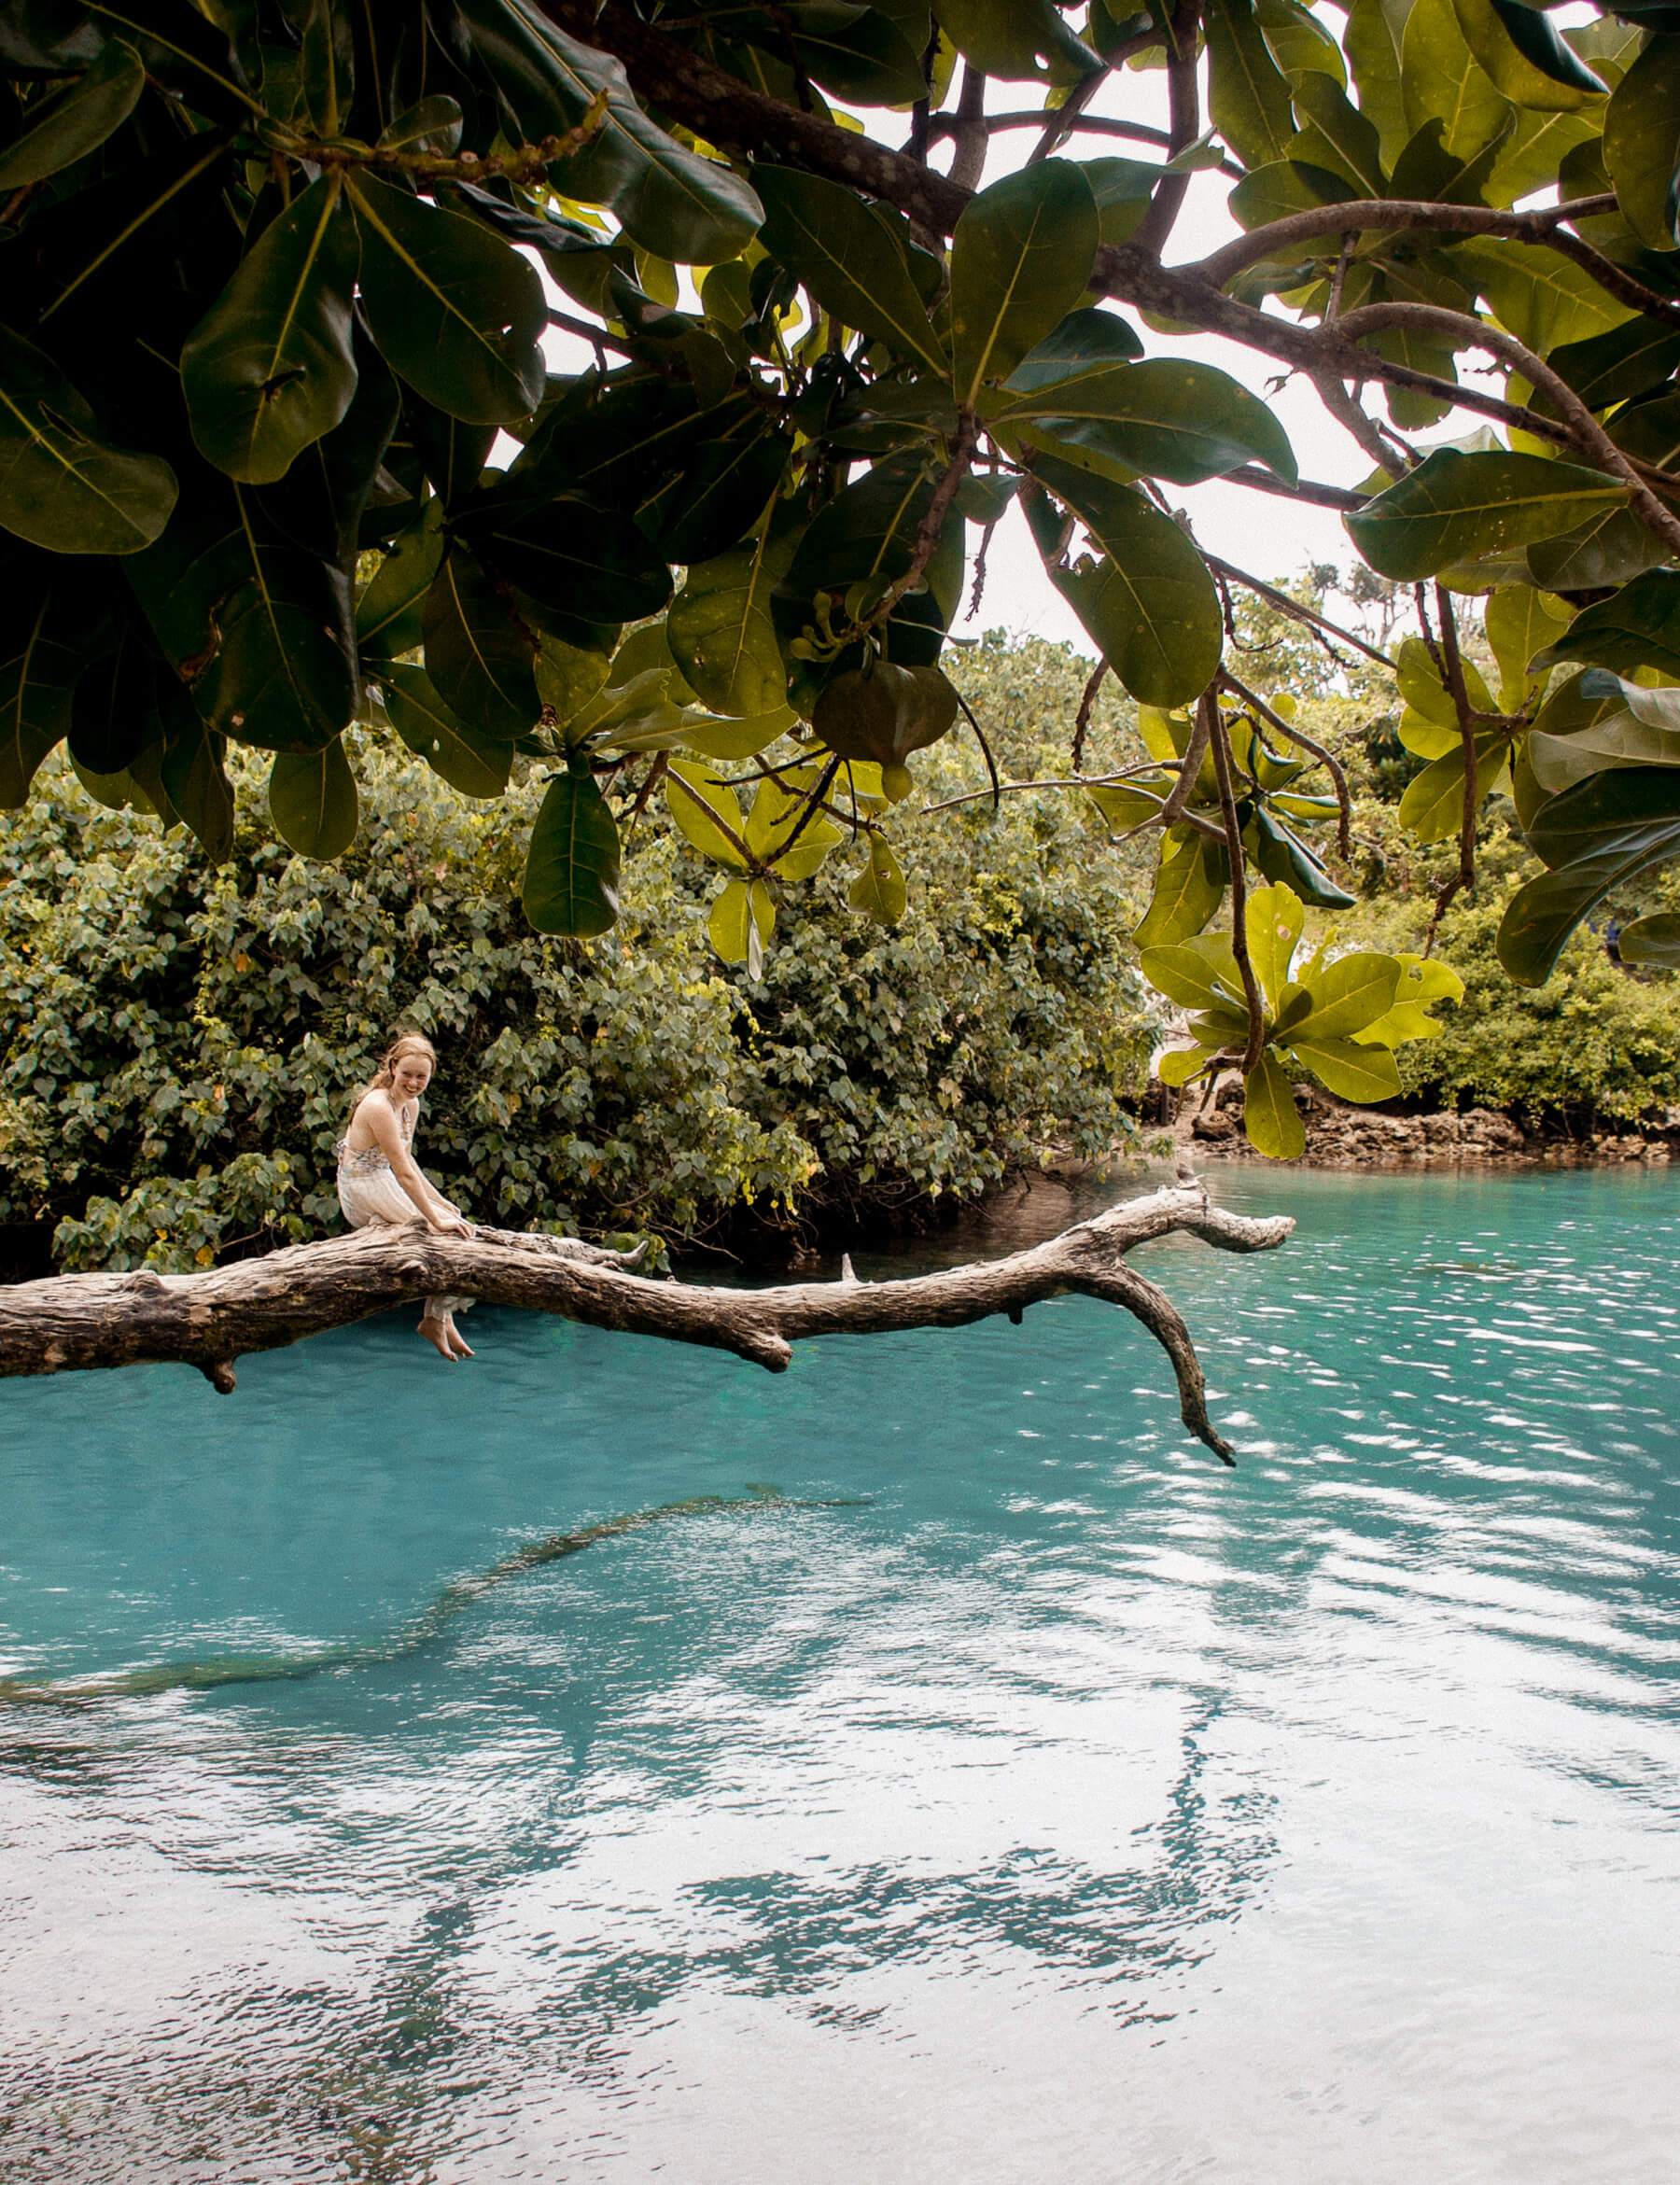 A girl sitting on a big log over the top of a bright blue lagoon in Vanuatu - Leaves of a tree top at the top of the image